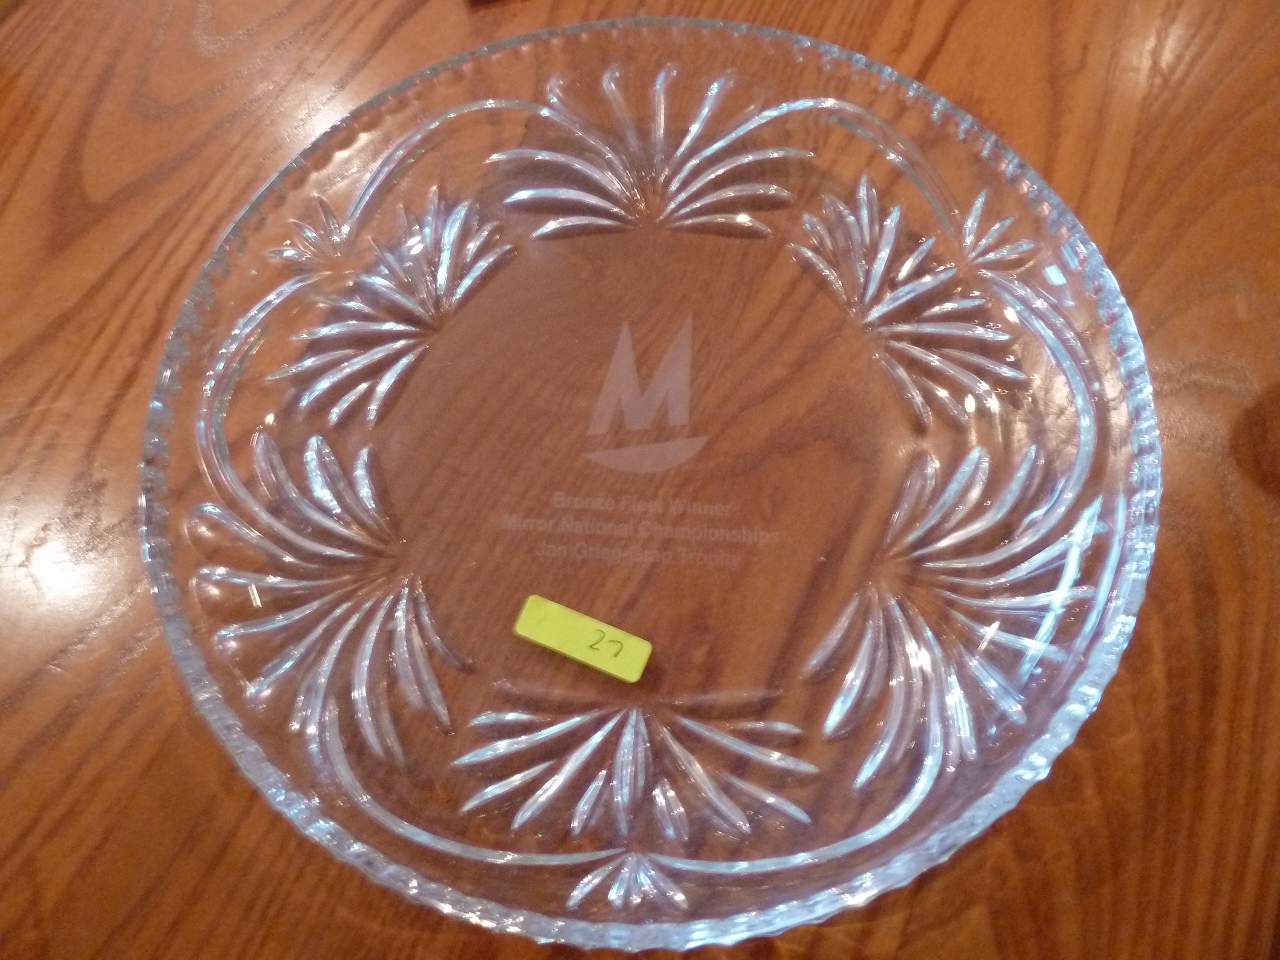 An engraved glass plate